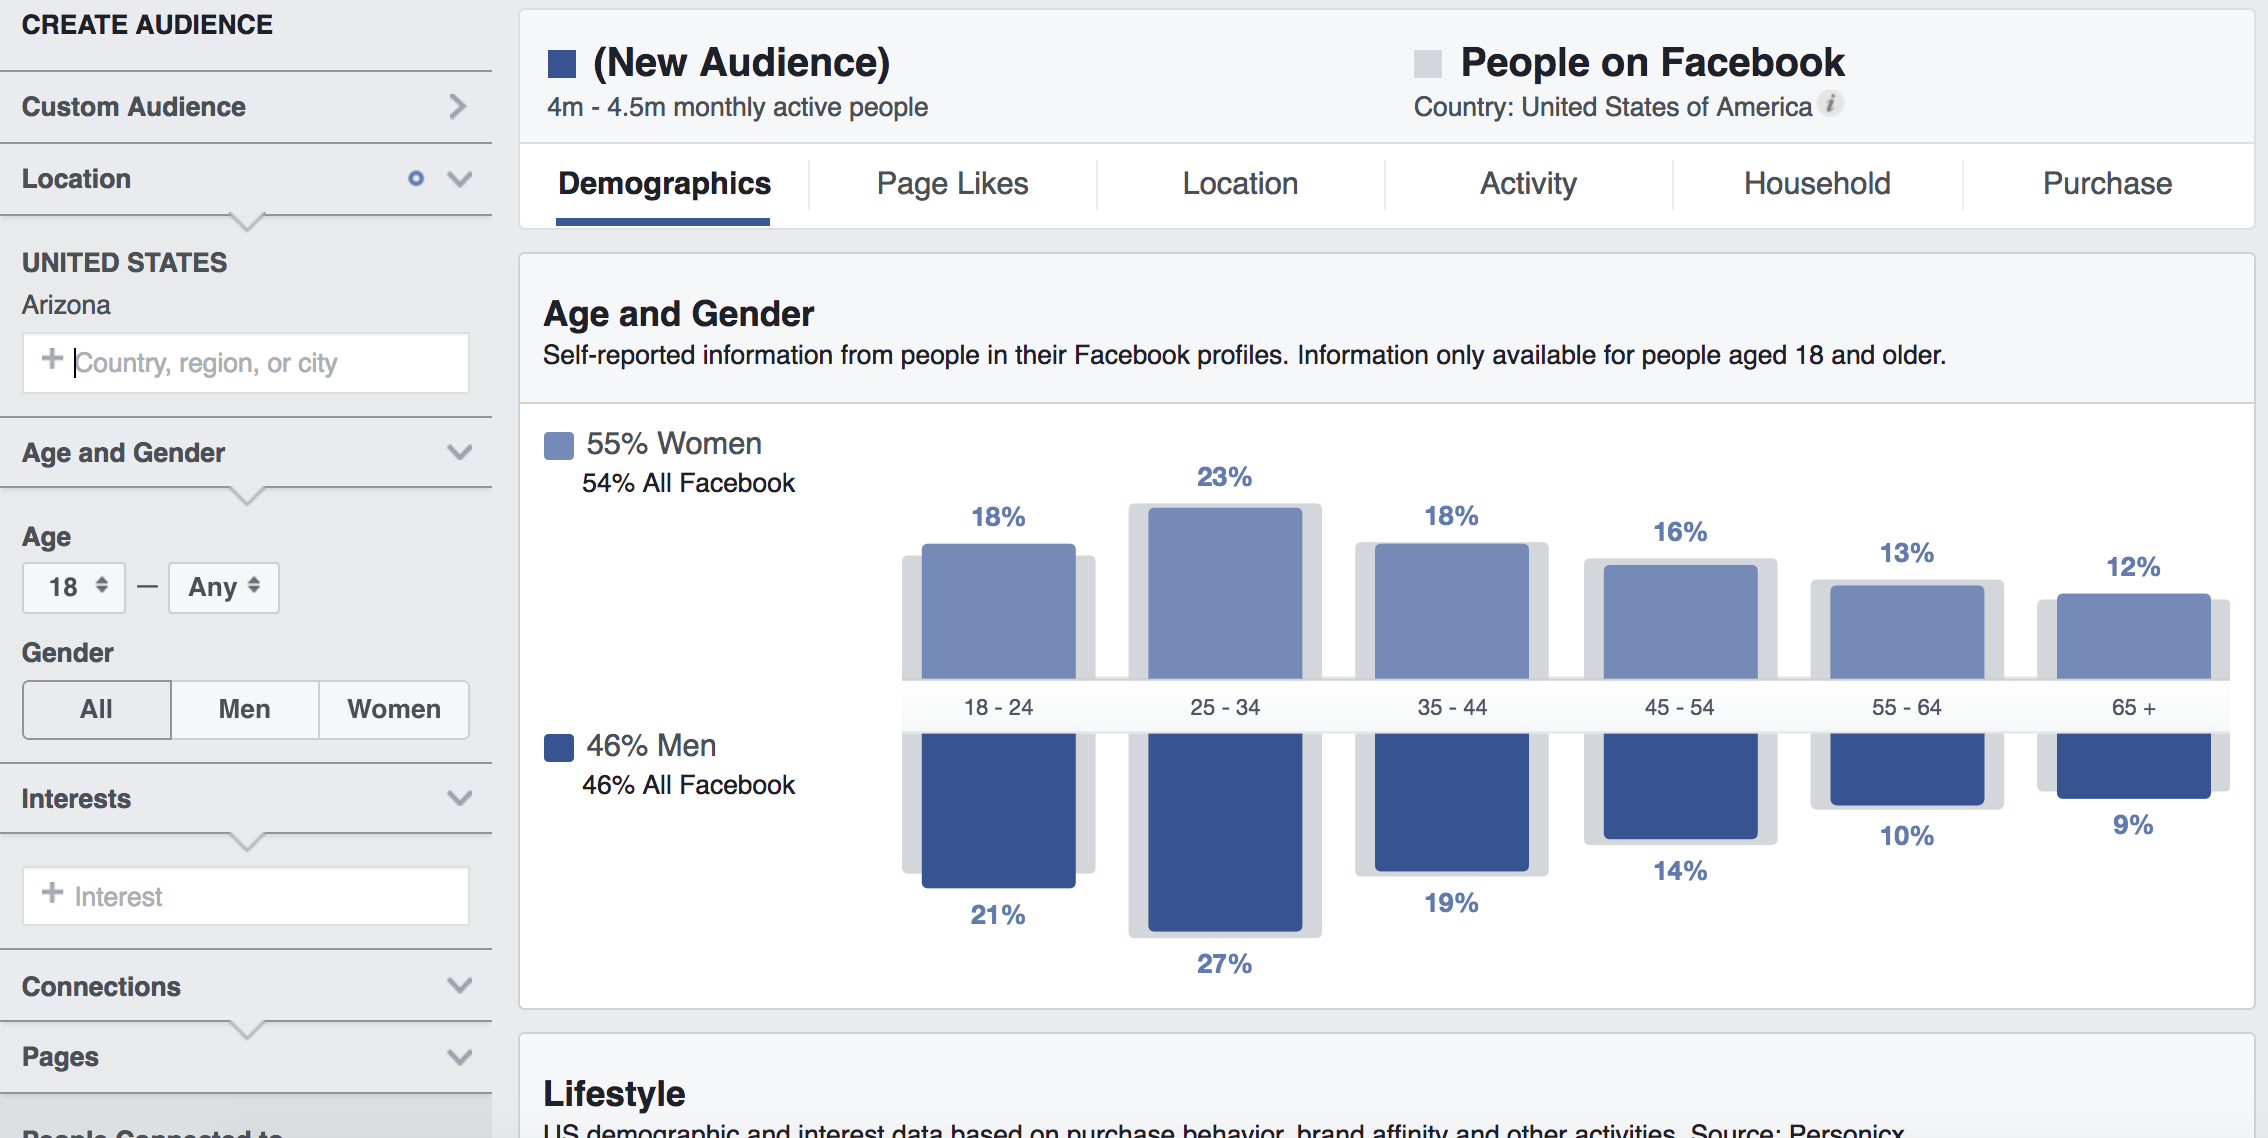 """This screenshot from Facebook Insights depicts what you would be shown if you follow the steps above then make your potential audience more specific by narrowing it down. Instead of looking at everyone in the country, select a state. Type a state into the """"Location"""" box in the left-hand menu; here, we've selected Arizona. Immediately, we see that the data changes a bit: Now, the Insights tool tells us that the data we're examining represents the 4 to 4.5 million monthly active Facebook users. You'll also notice that the demographic data has shifted; the blue bars represent data for Arizona users, but the gray bars behind the blue ones represent the same United States Facebook users you started with, so you can compare your new audience to the """"typical"""" Facebook user."""